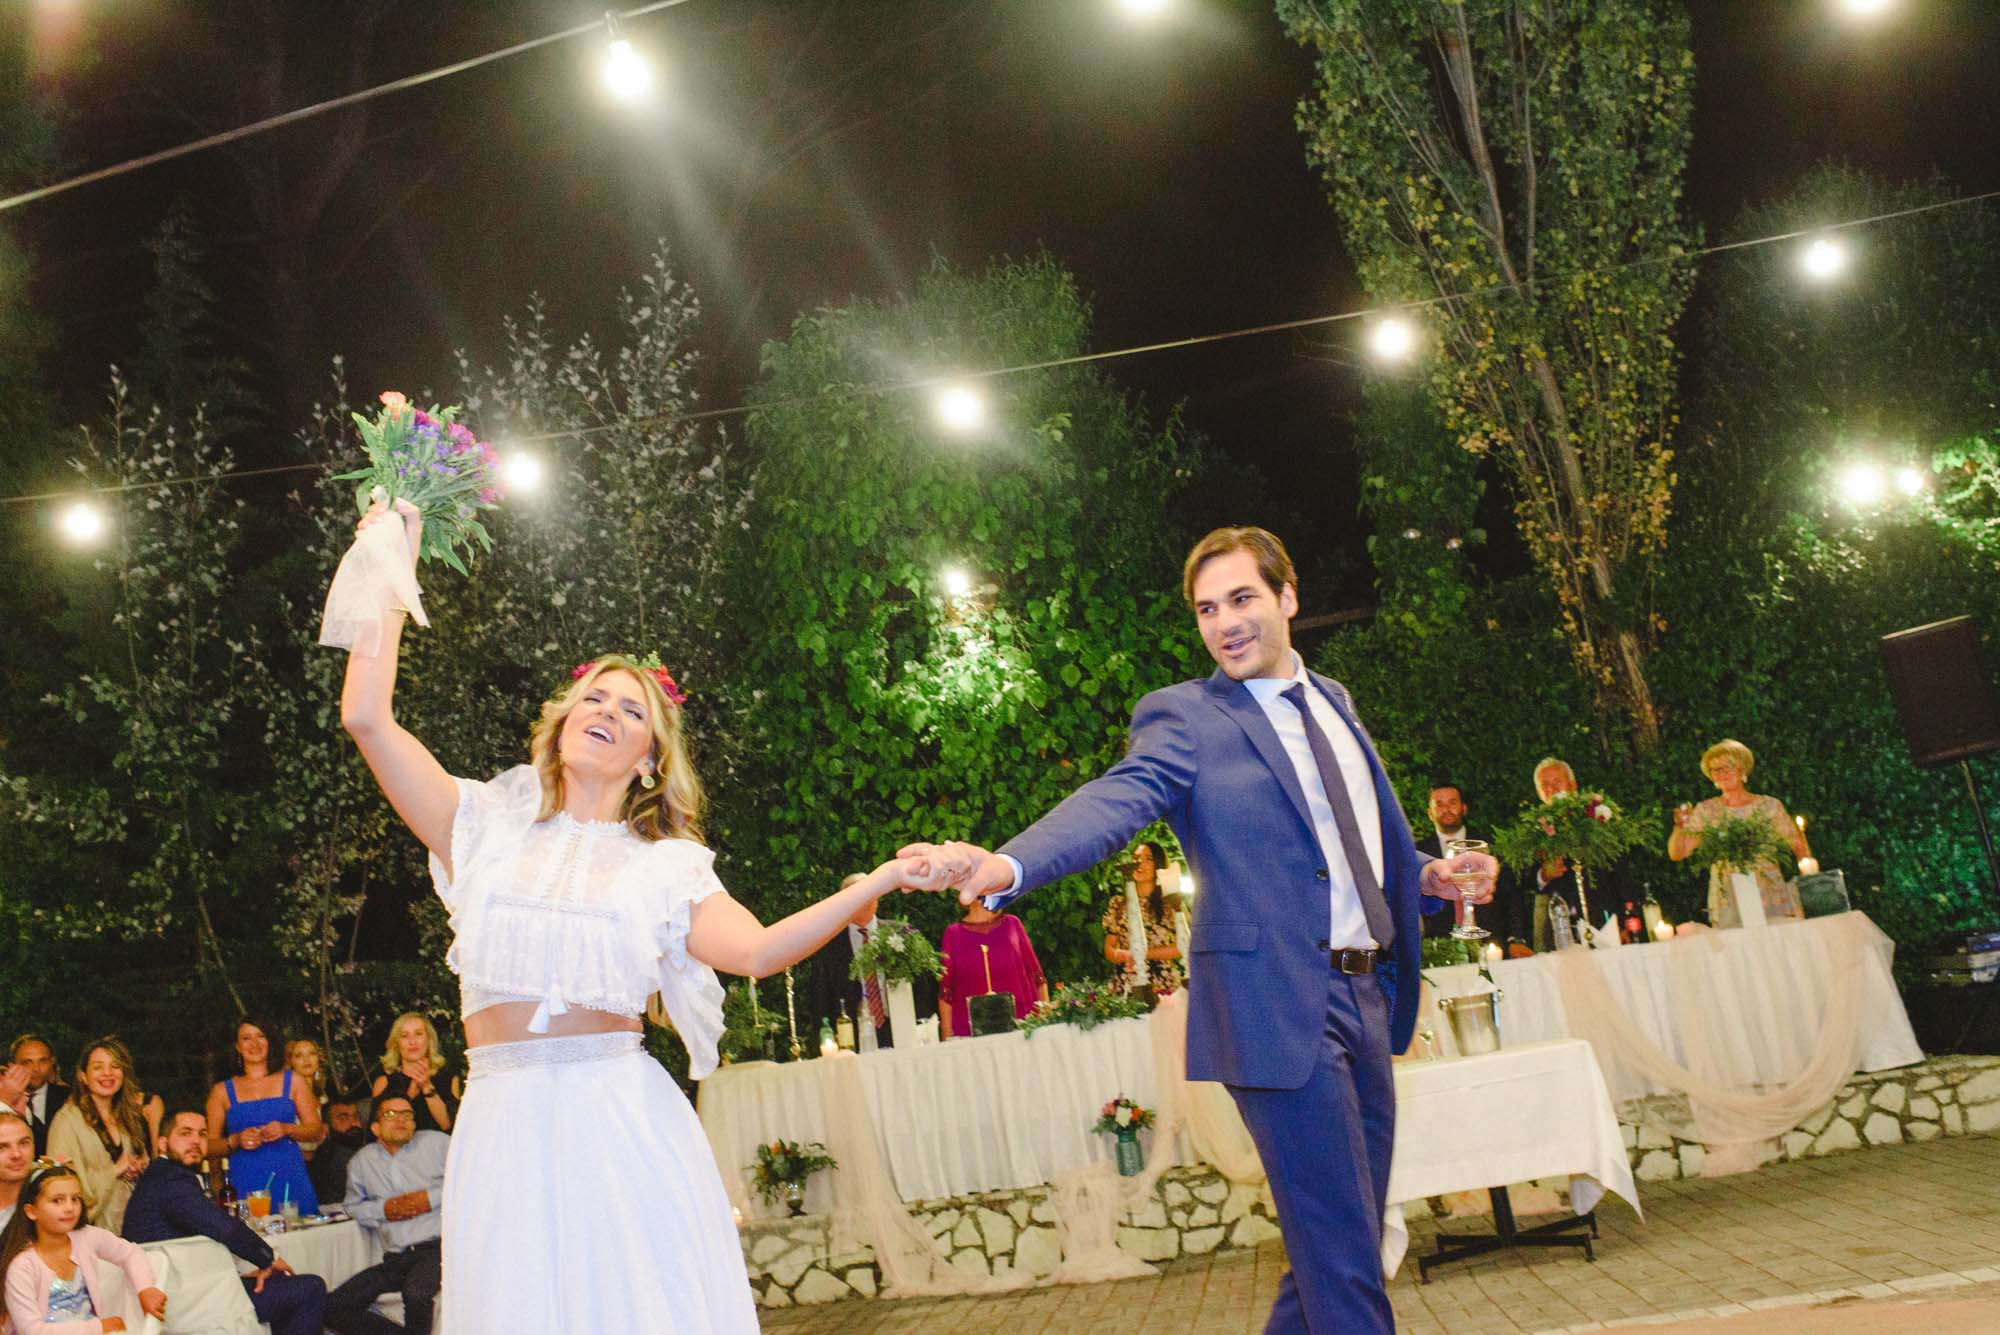 A colorful spring wedding in Tripoli